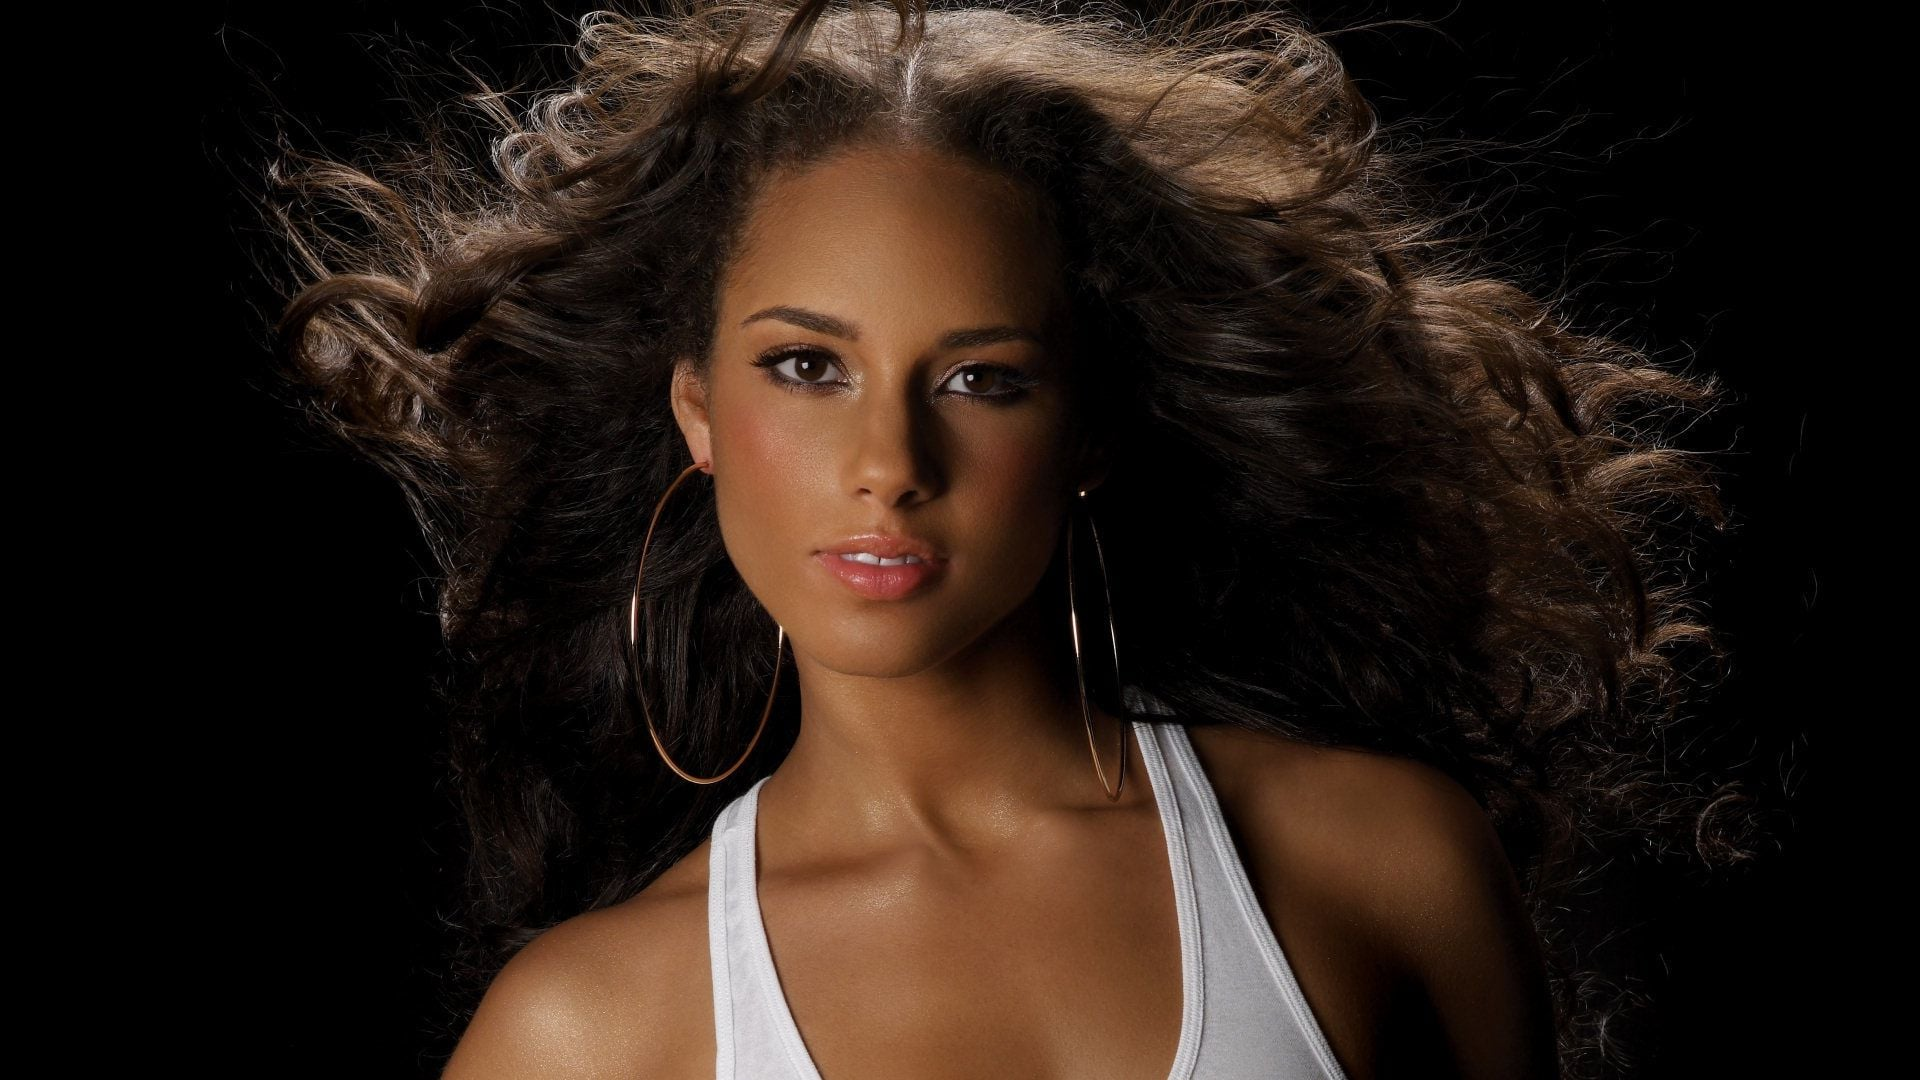 Tamanna Hd Wallpapers Free Download 31 Alicia Keys Wallpapers Hd Download